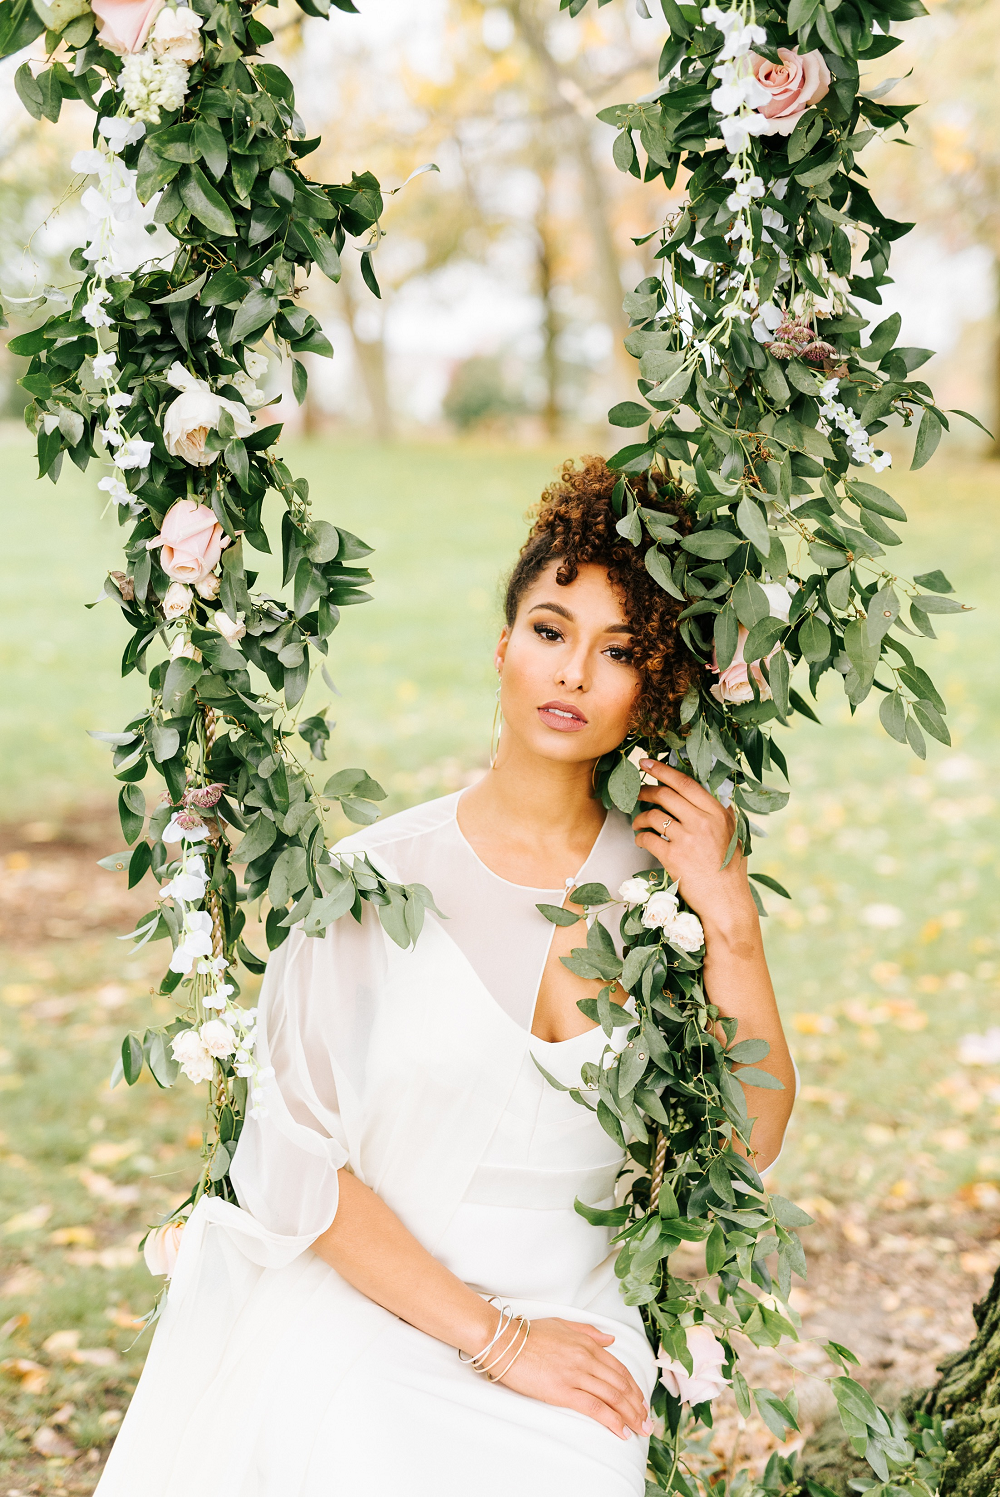 Lush Greenery Wedding Inspired Styled Shoot at Cornman Farms Bride Floral Garland Swing